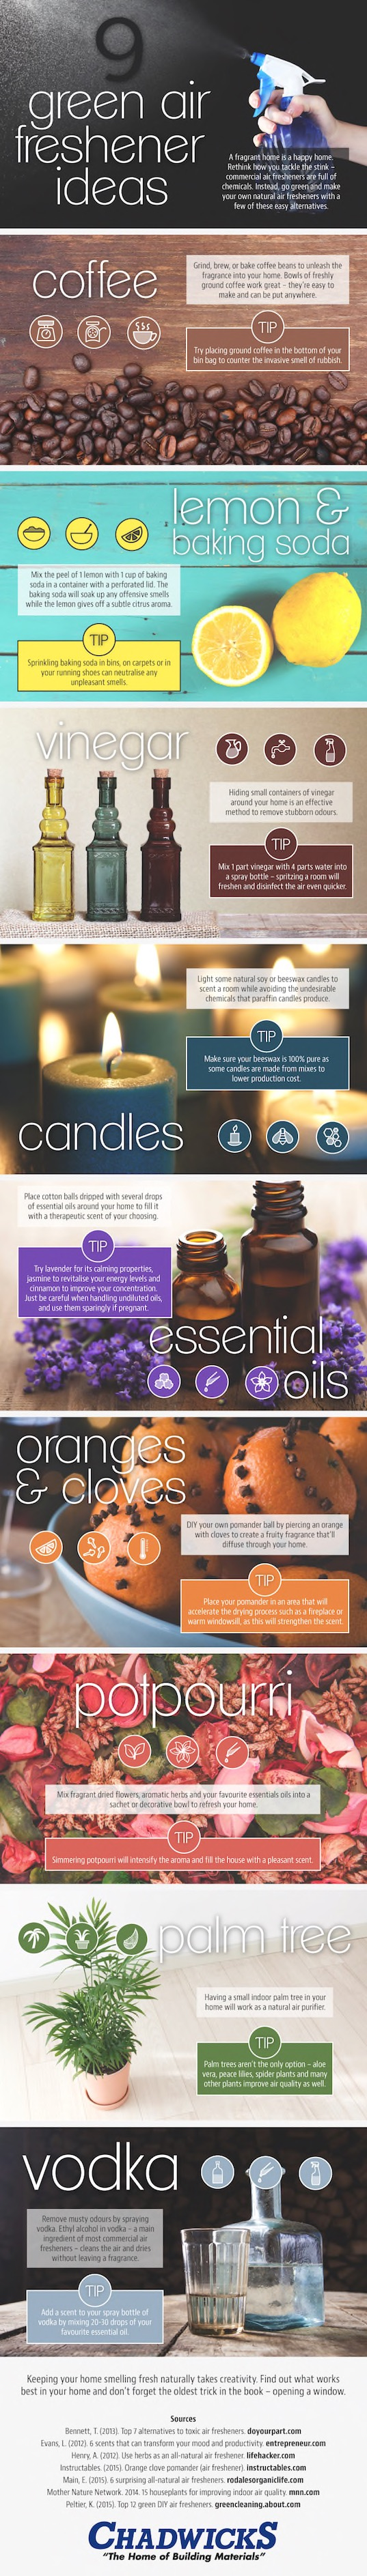 infographic, all natural air freshener, green air freshener, Chadwicks, reader submitted content